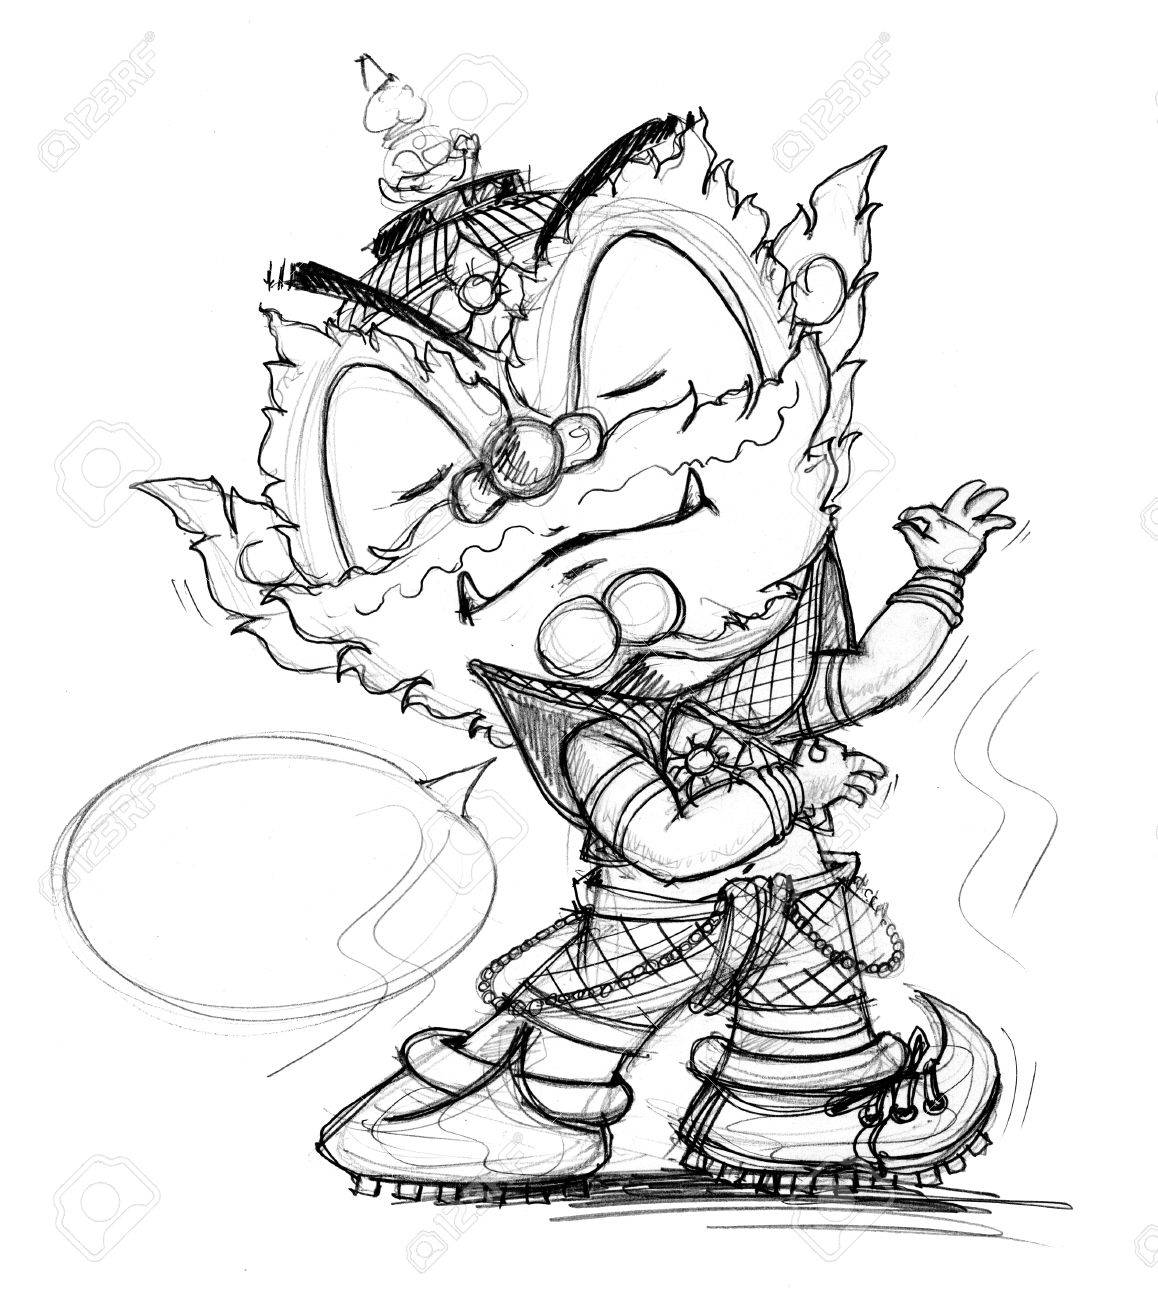 1158x1300 Thai Giant Dancing Cartoon, Character Design Have Pencil Freehand